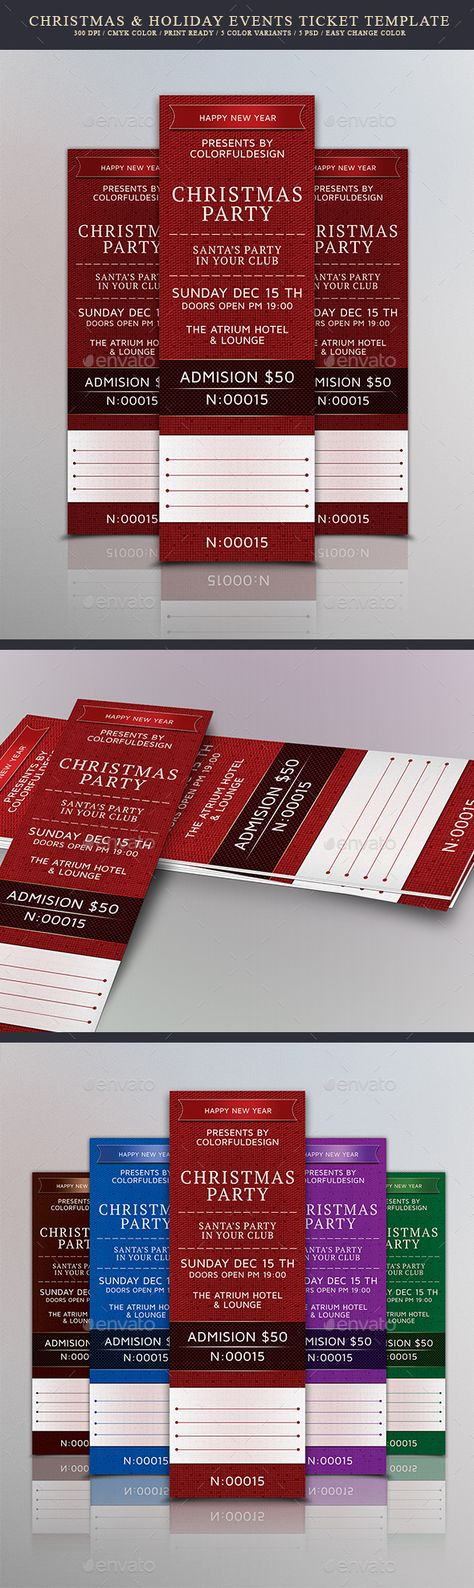 Christmas \ Holiday Events Ticket Template Ticket Template   Event Tickets  Template Word  Event Tickets Template Word